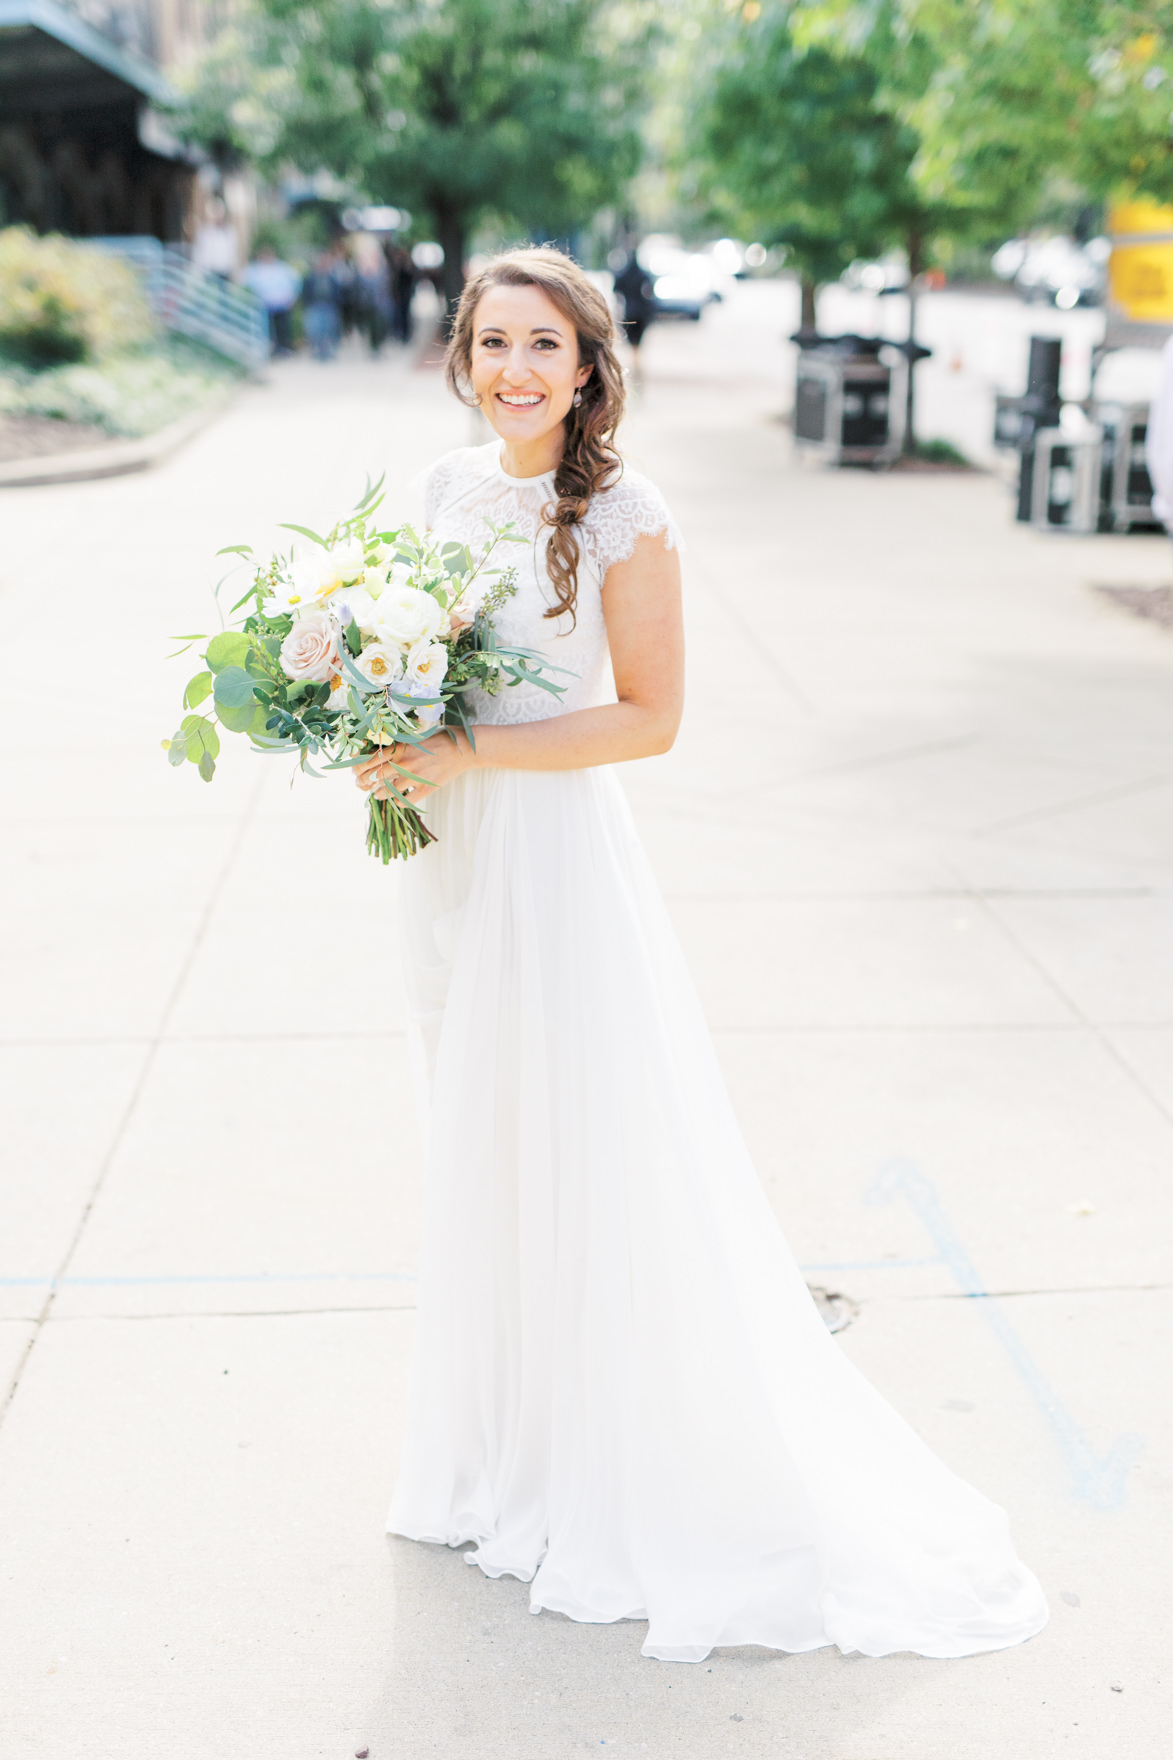 We simply adored Missy's long flowing wedding gown with lace top for her wedding day, it was the perfect fit for her modern and elegant old city Philadelphia wedding at Power Plant Productions. Power Plant Production wedding photographer